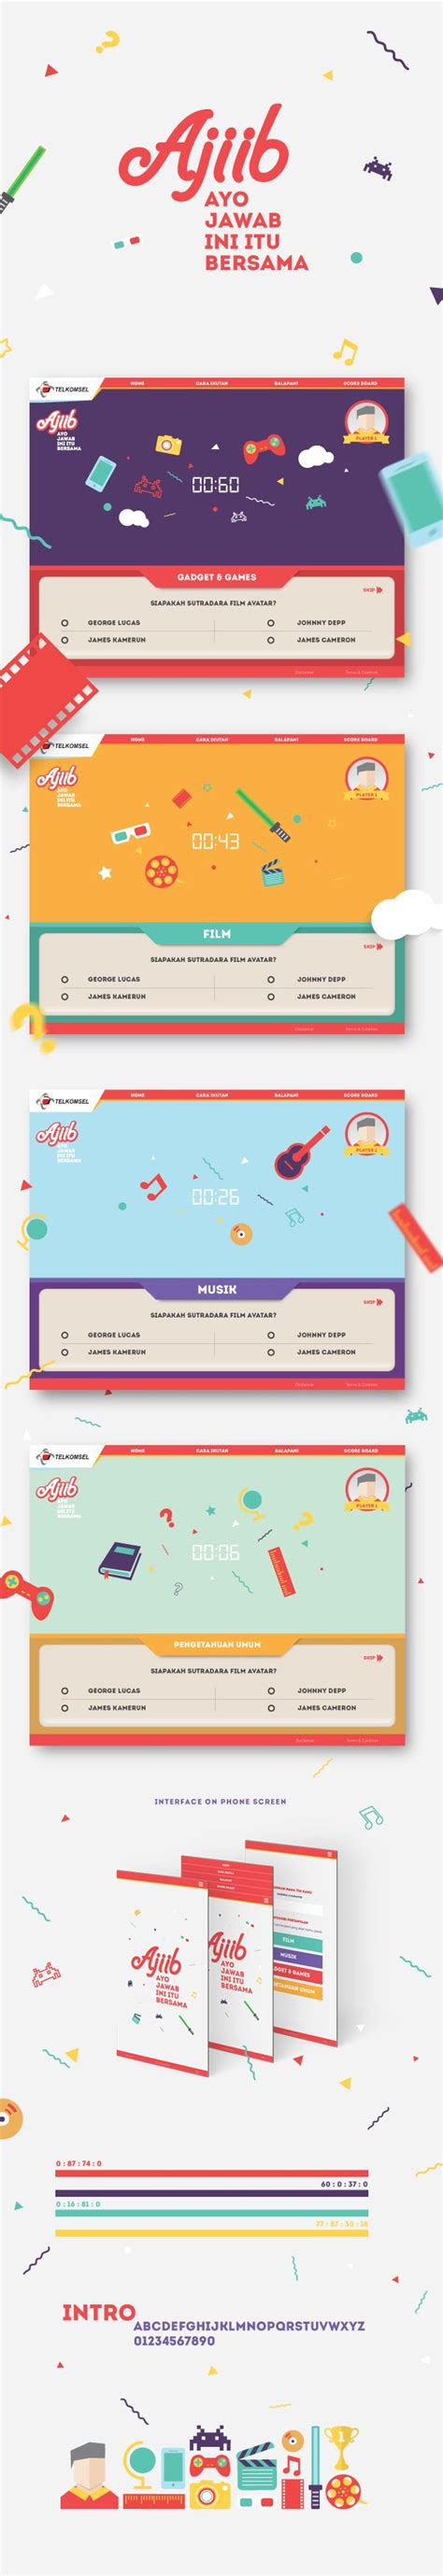 game design quiz ajiib quiz games on behance design b m pinterest